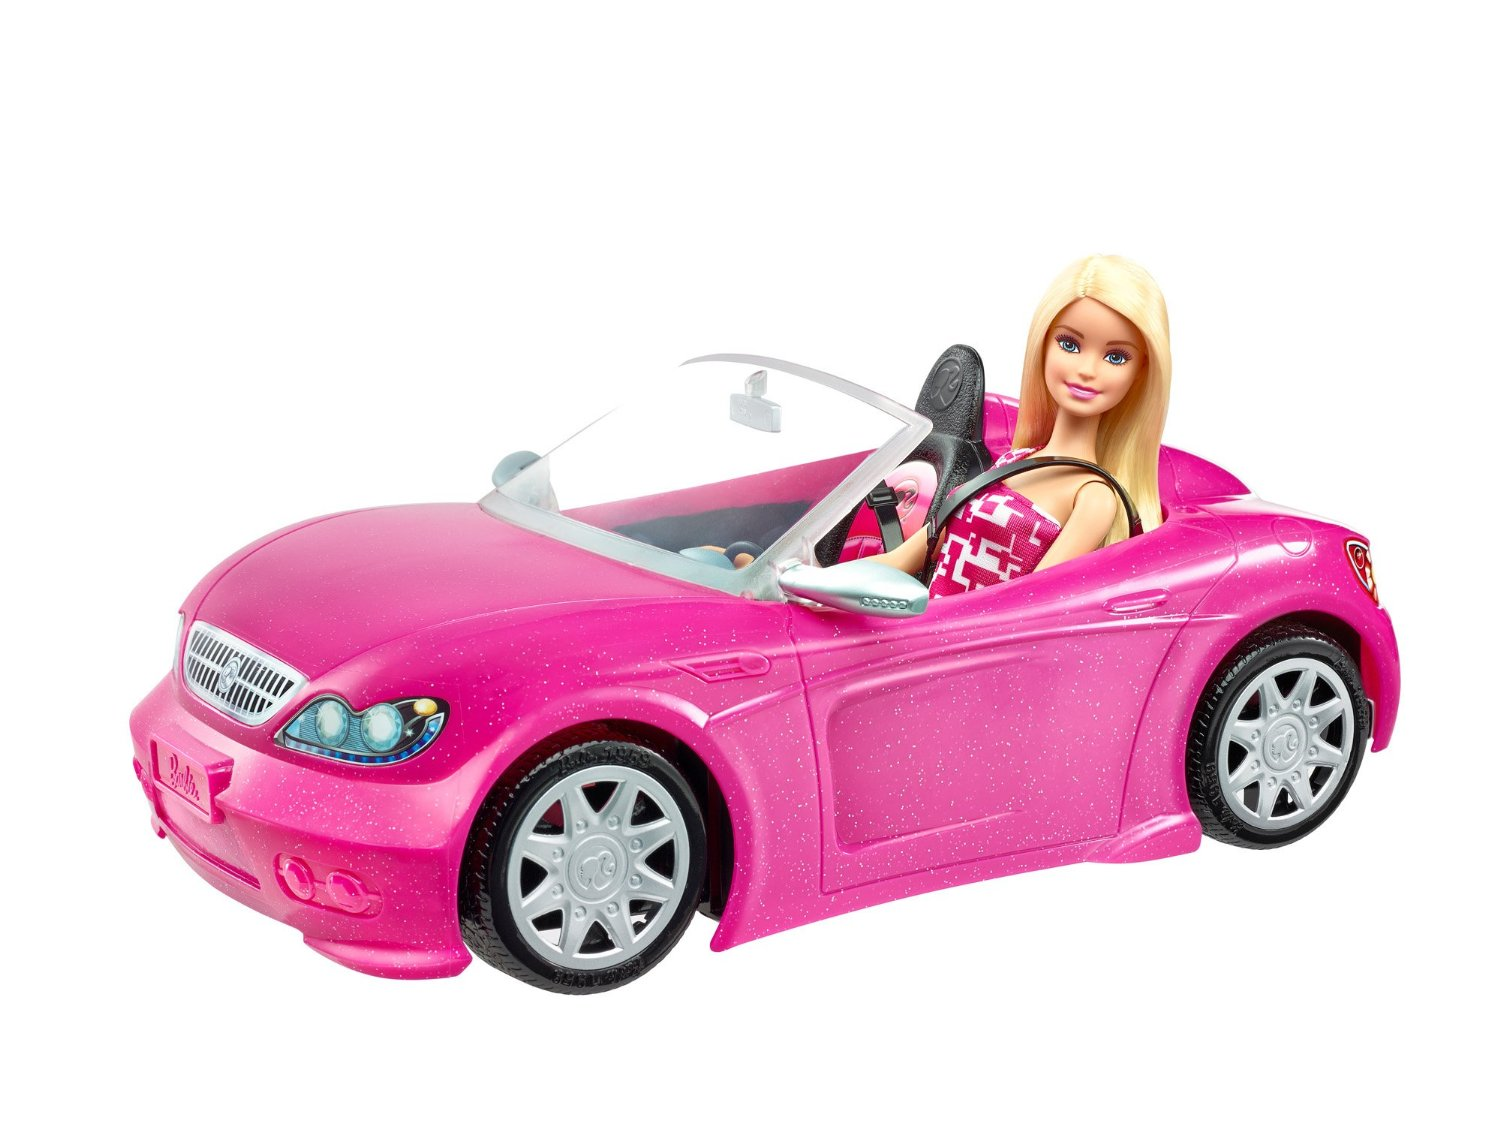 barbie and convertible car barbie doll friends and family history and news from 1959 to the. Black Bedroom Furniture Sets. Home Design Ideas